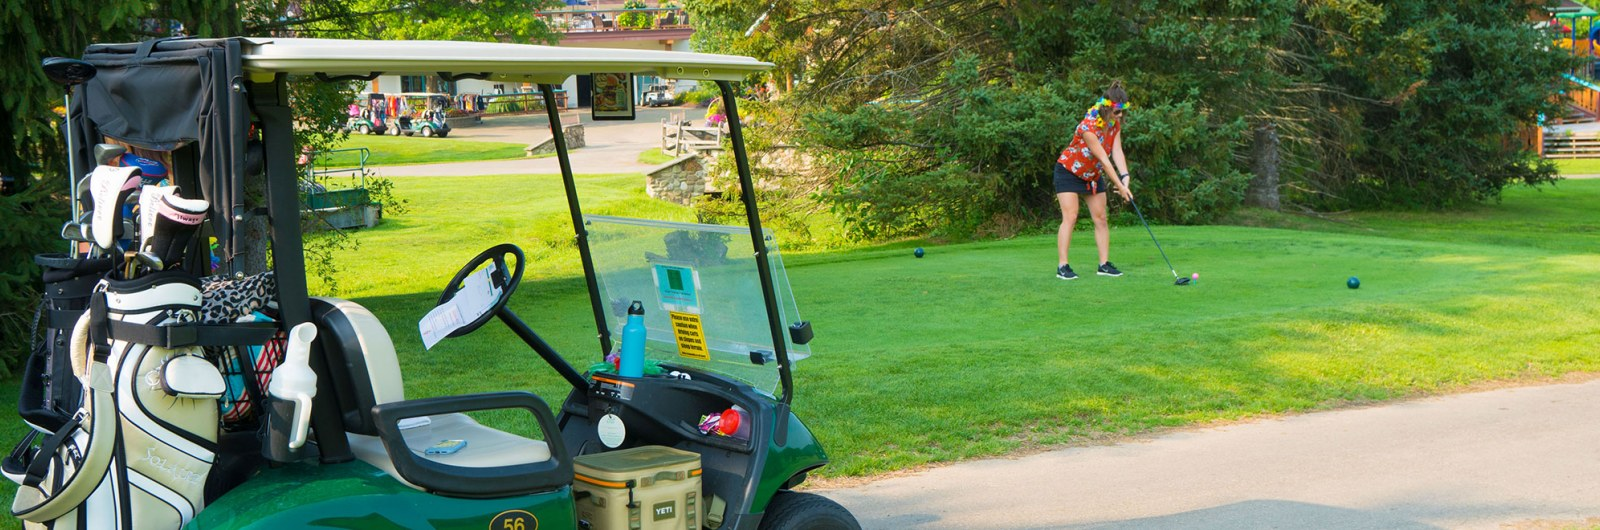 Woman about to tee off on golf course